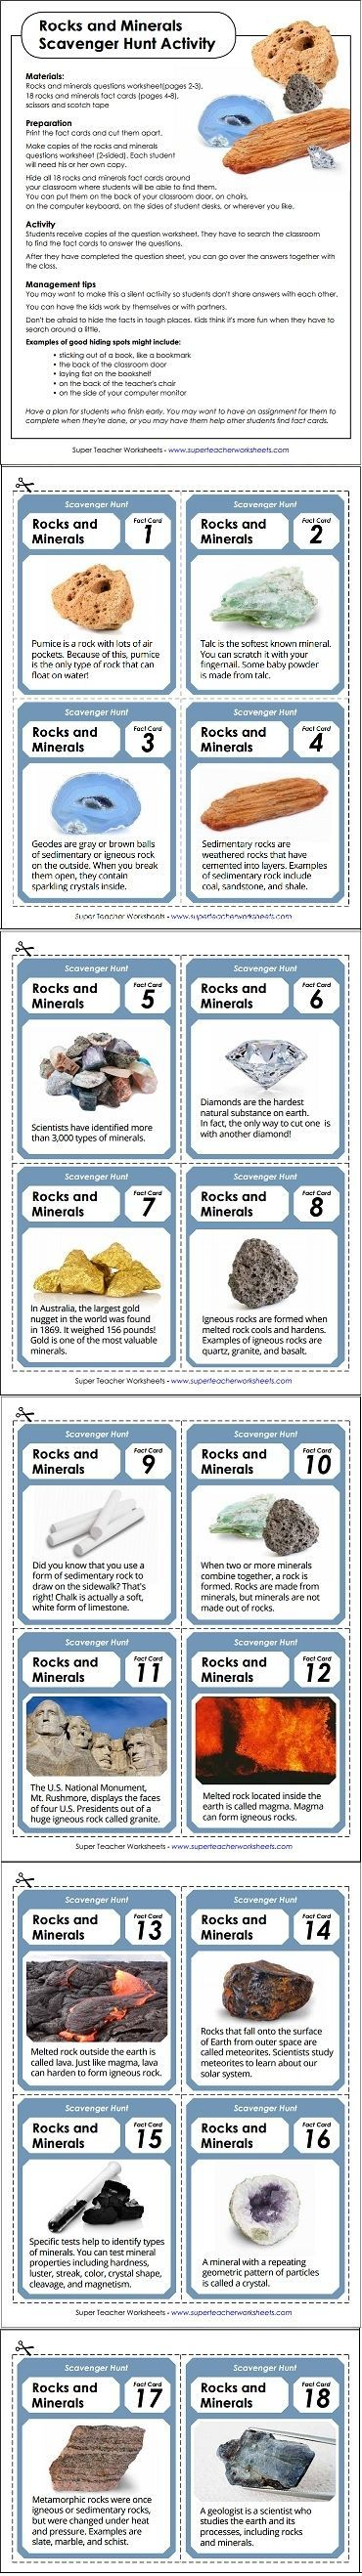 hight resolution of FREE Printable Rocks and Minerals Scavenger Hunt   Rocks and minerals